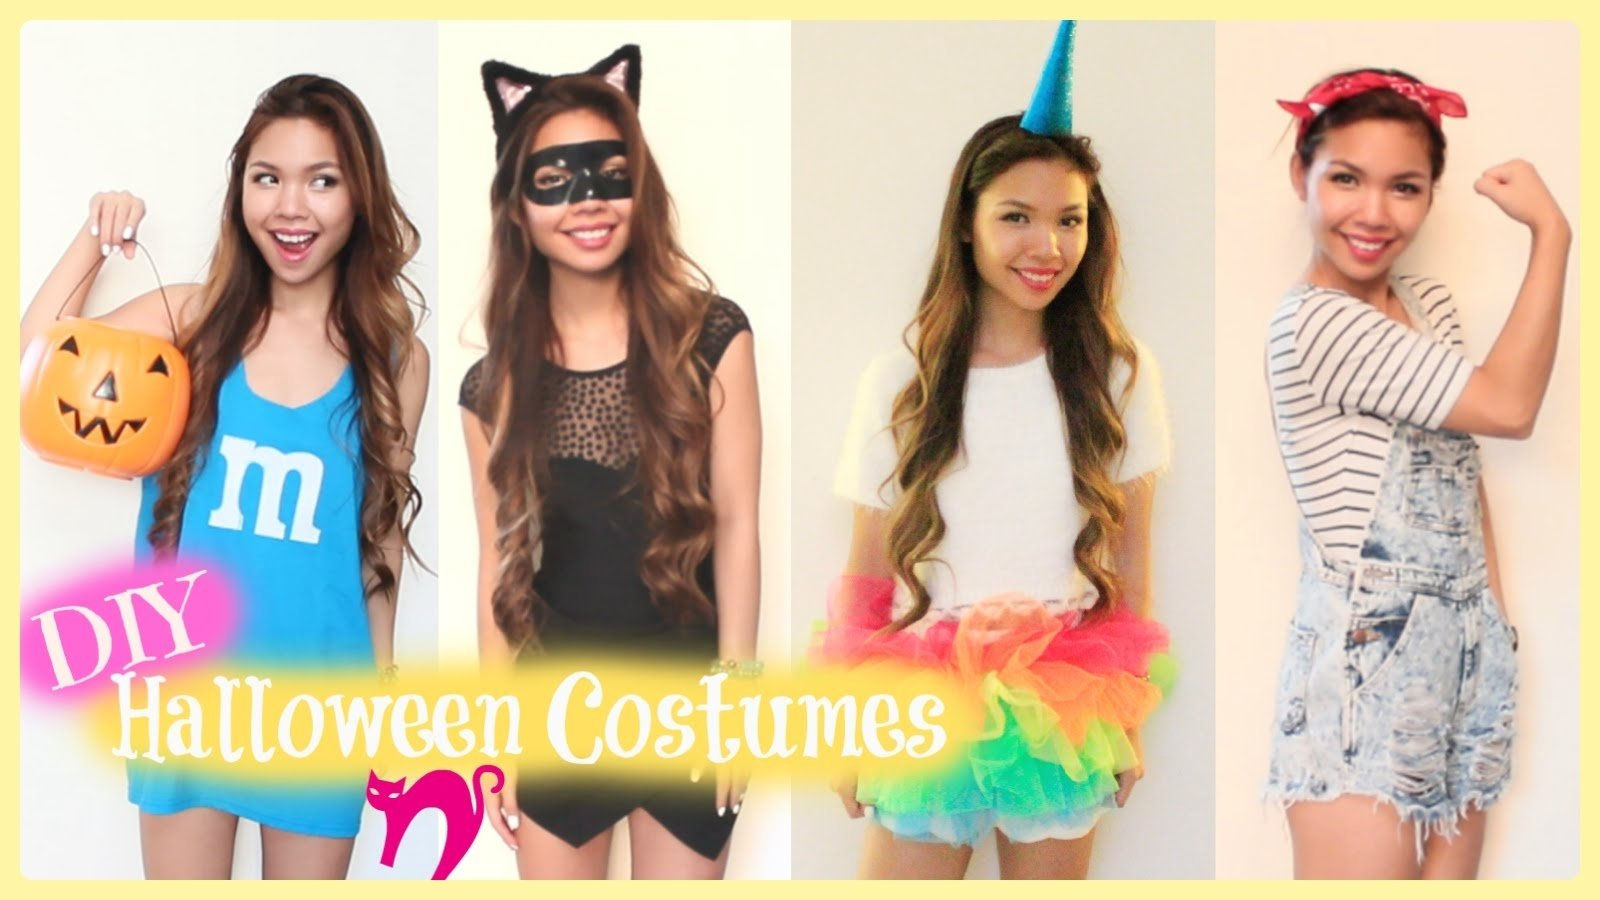 10 Beautiful Do It Yourself Halloween Costume Ideas super easy last minute diy halloween costumes 2014 youtube 5 2020